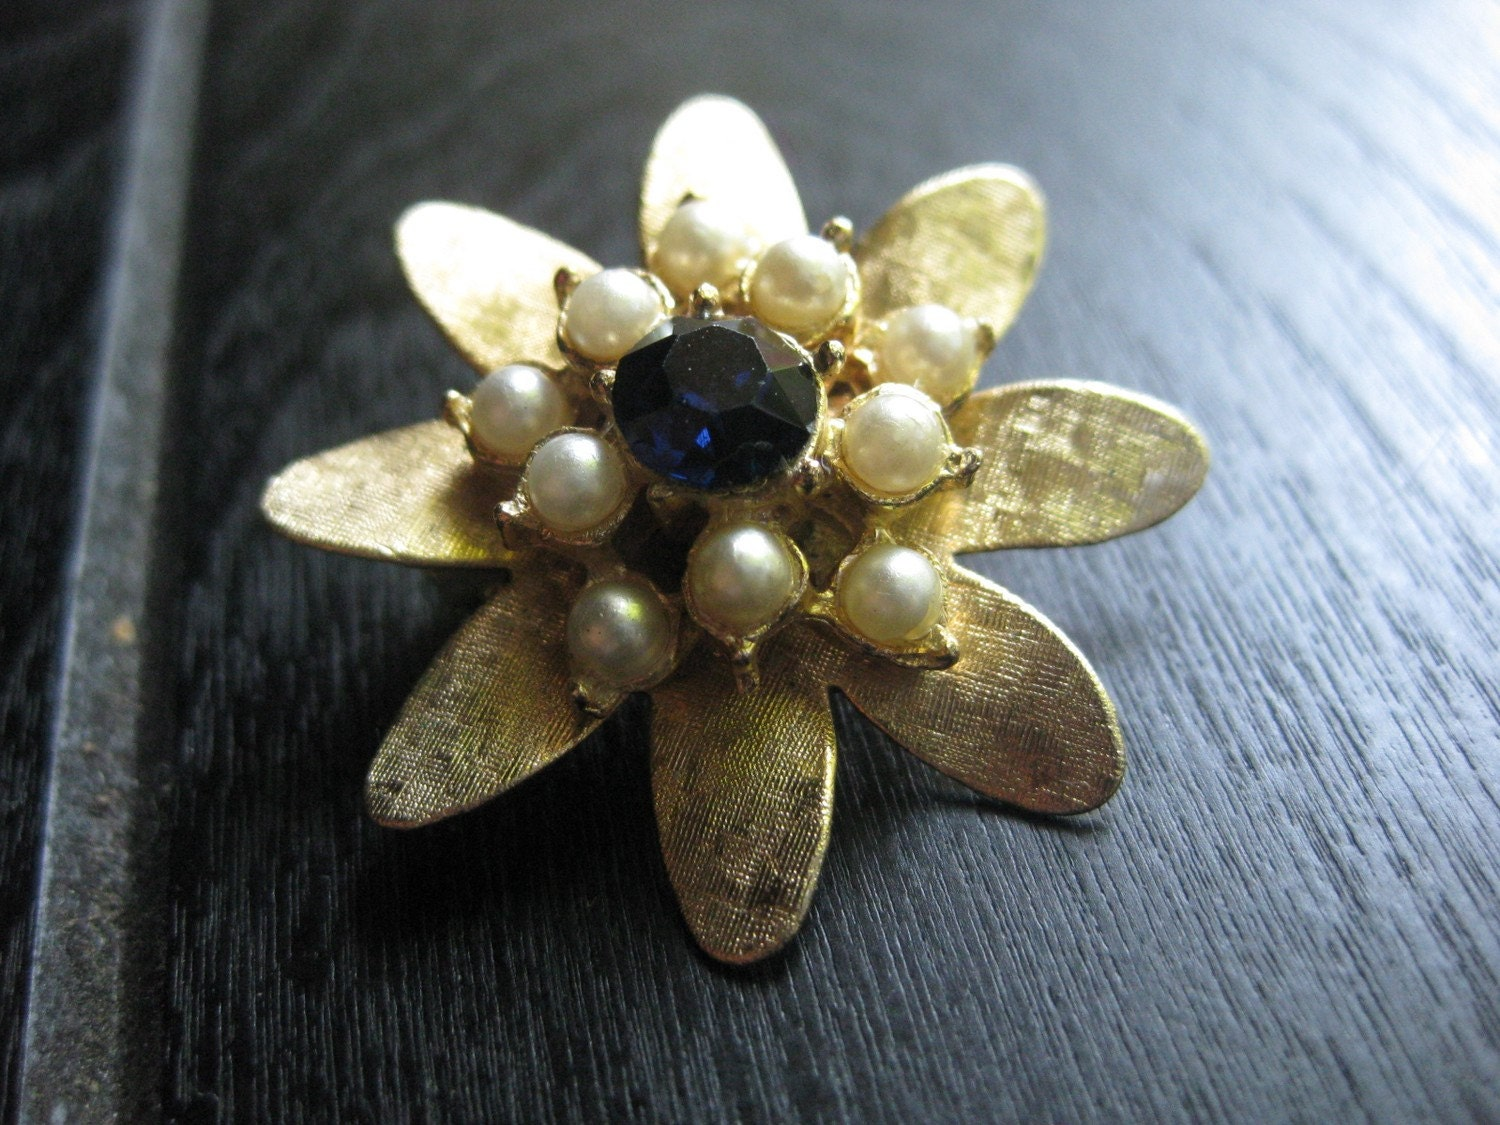 Cluster Gold Tone, Pearl and Sapphire like center Classic Flower Vintage Brooch Free Priority Shipping w/ Tracking